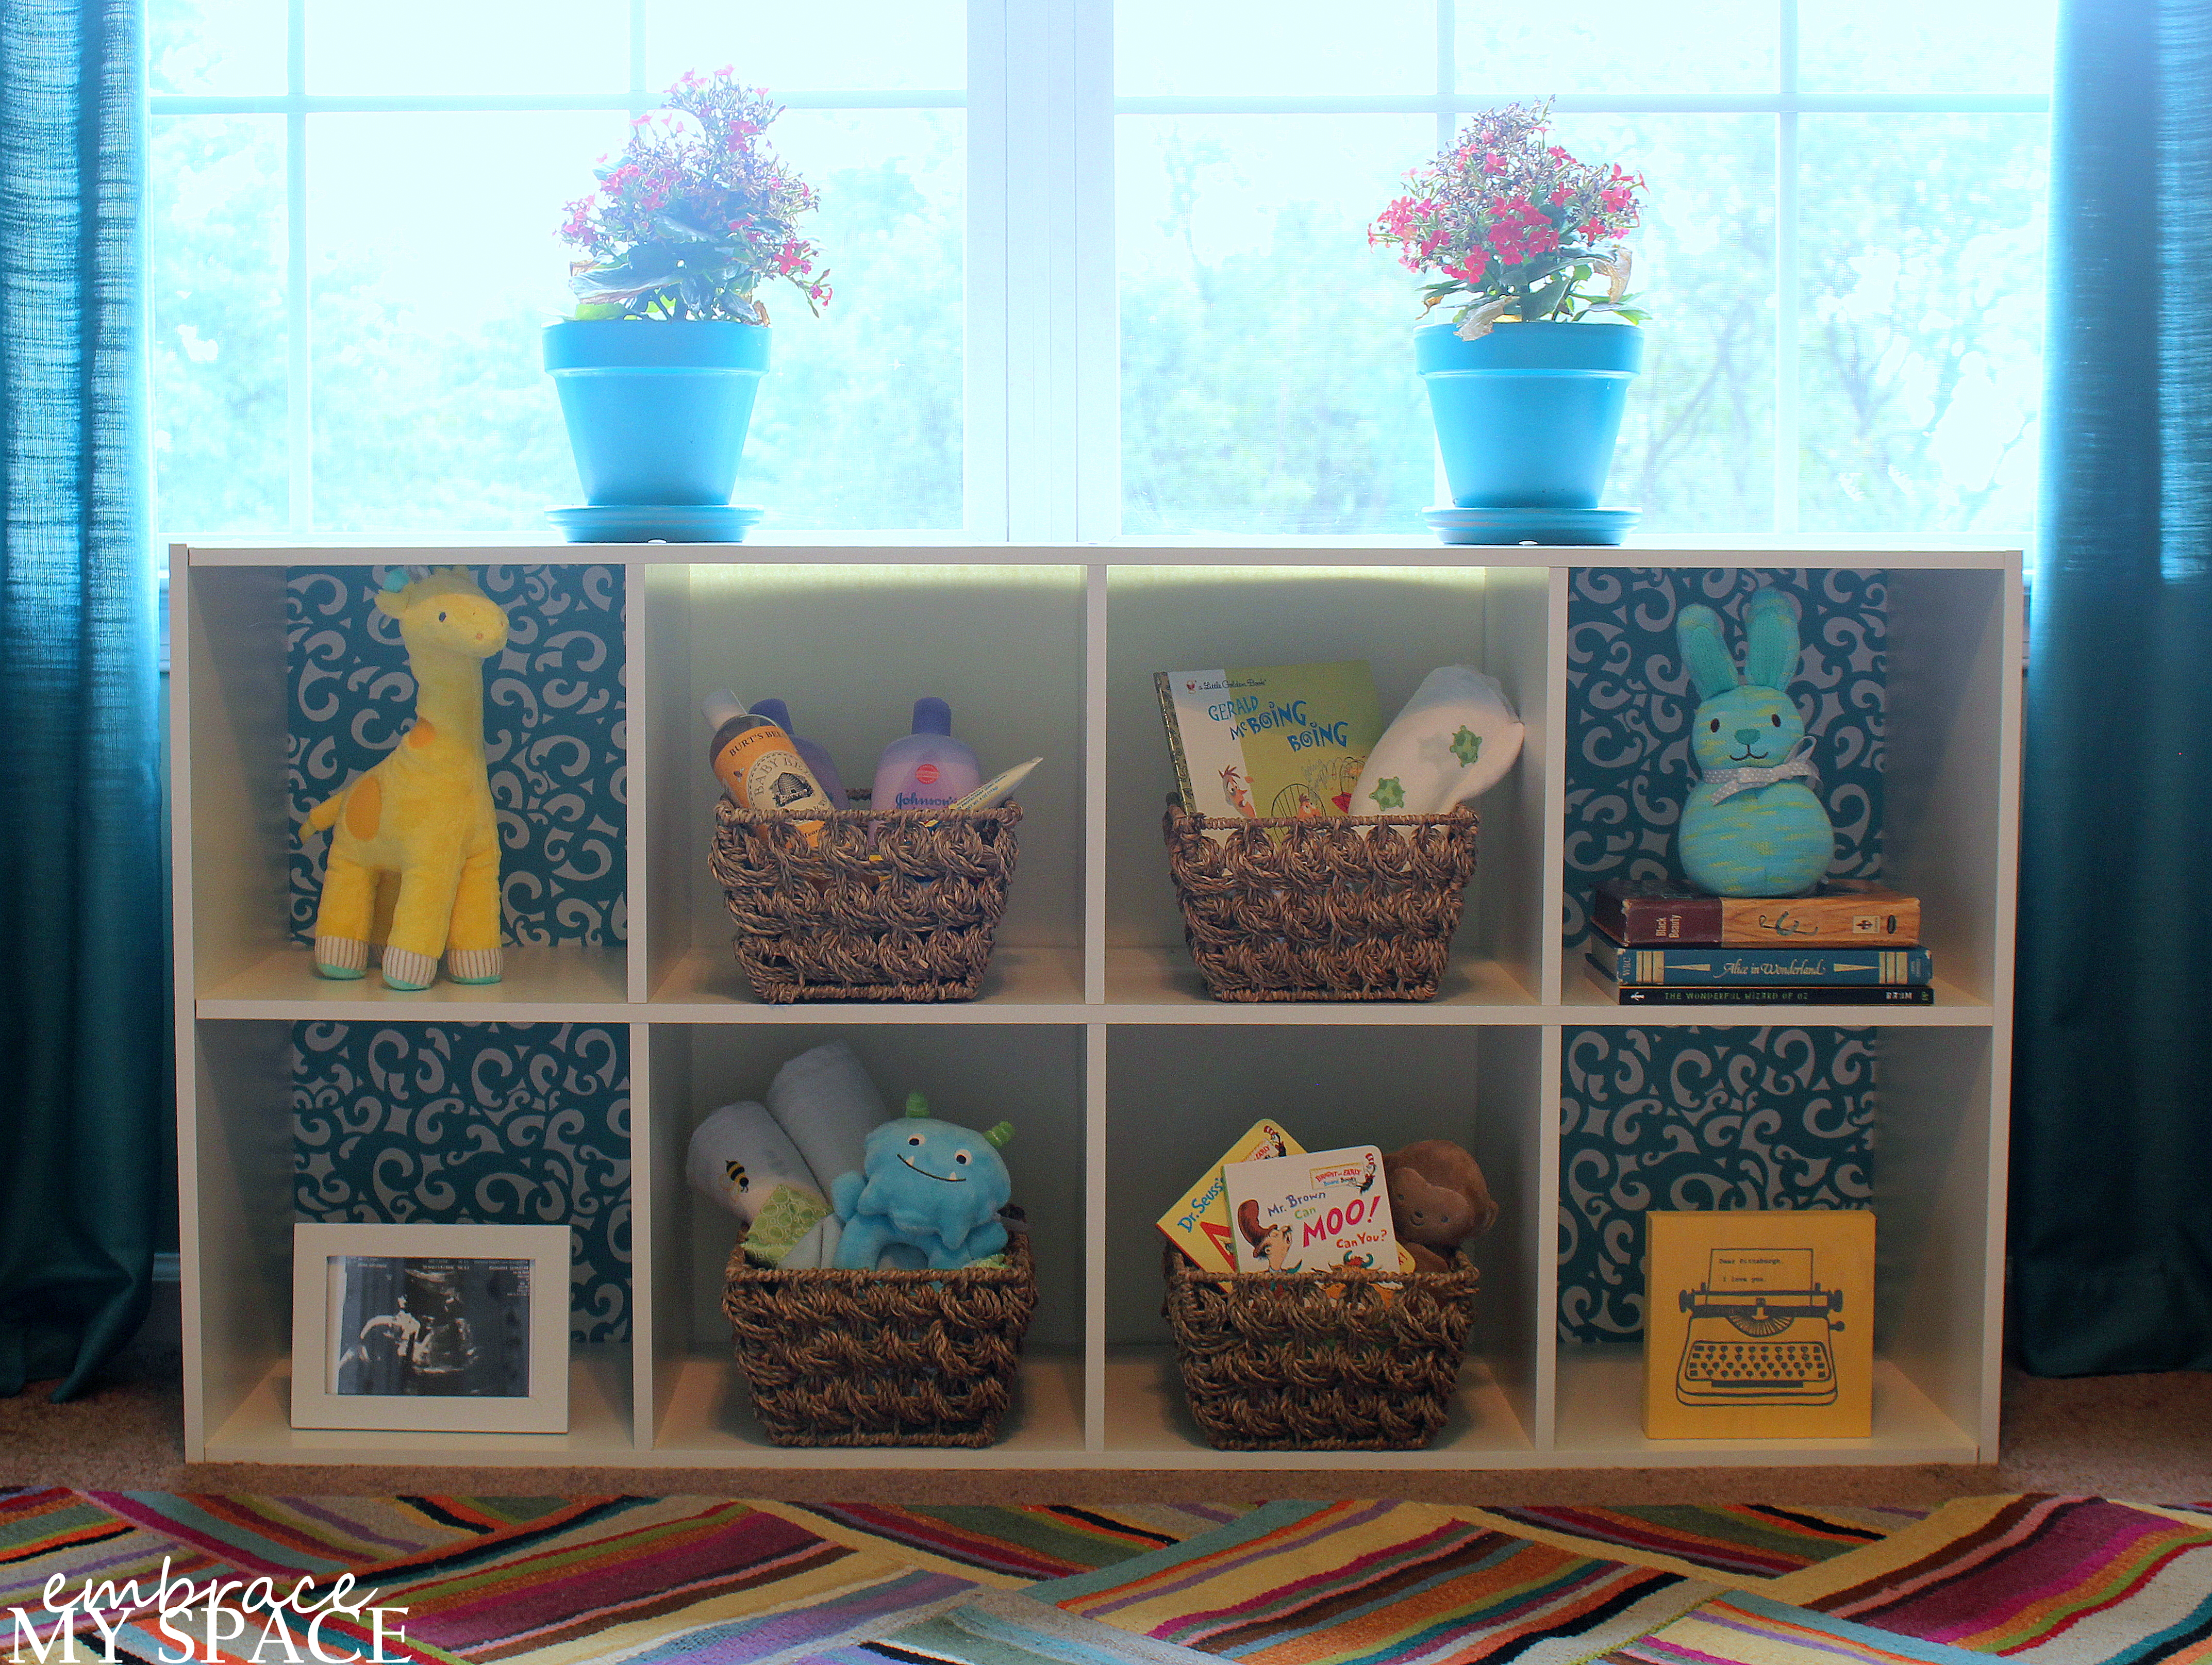 Exceptional Embrace My Space: Nursery